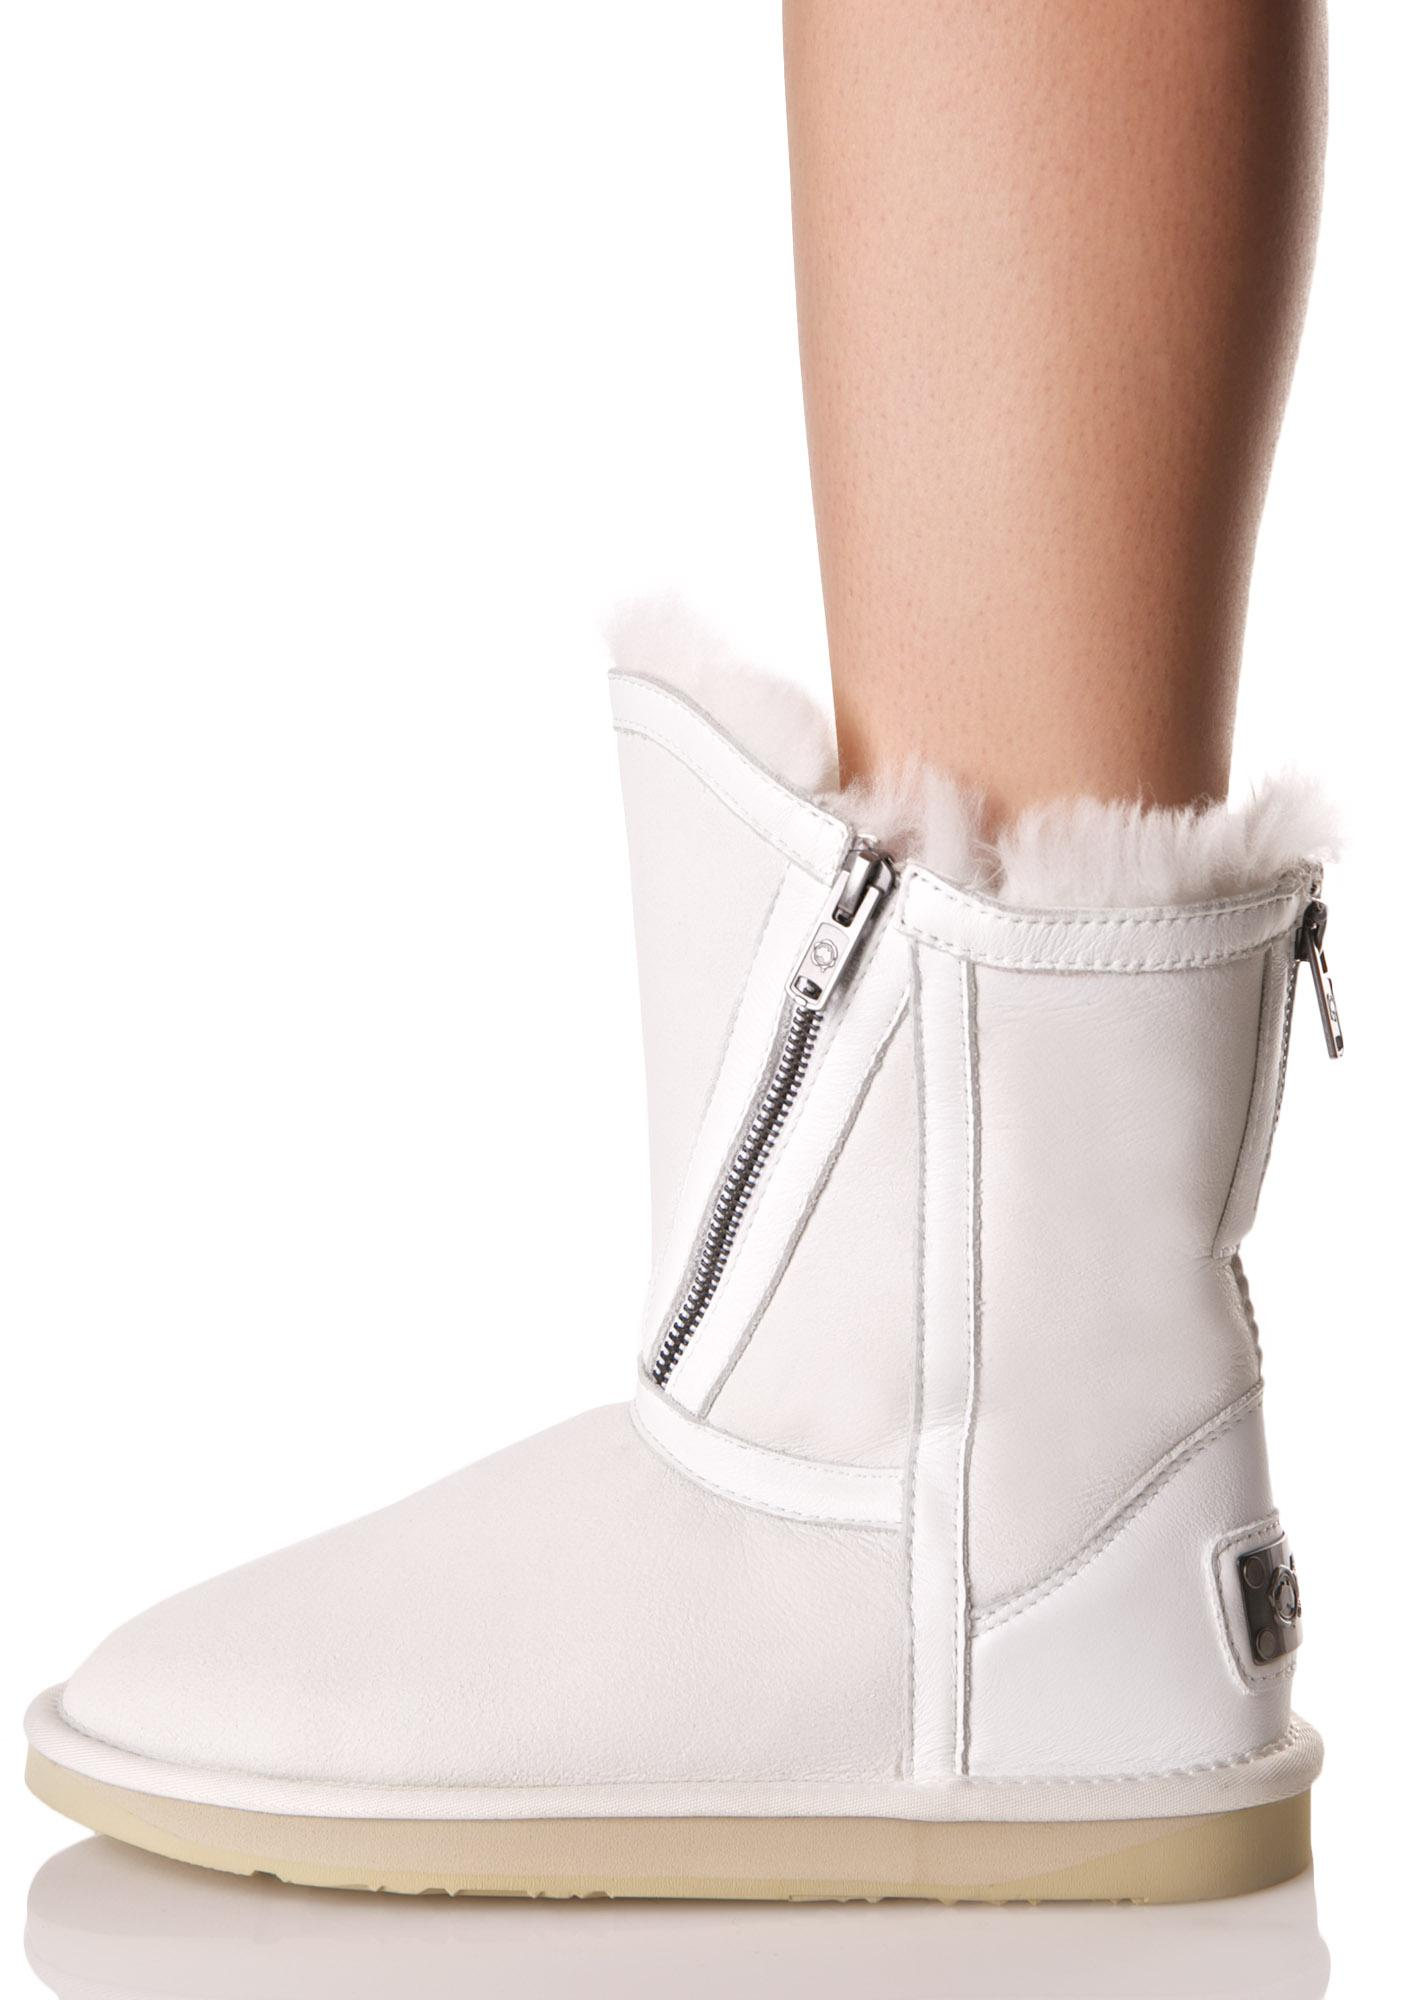 Australia Luxe Collective Narius Zippered Boots